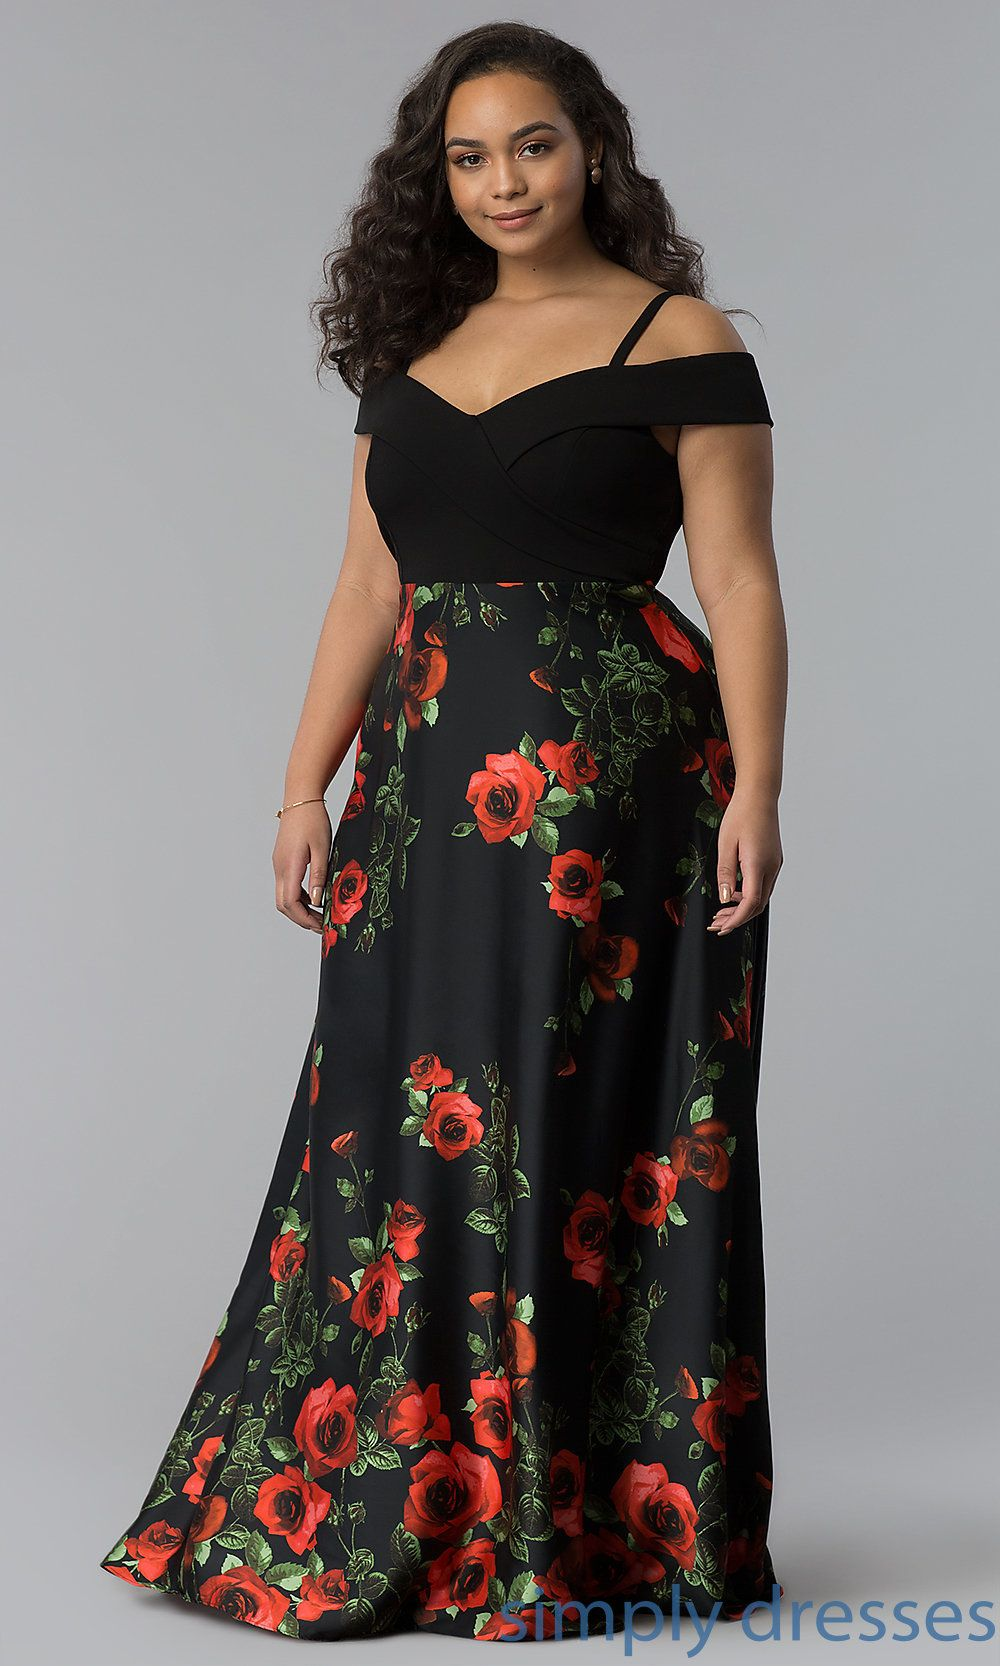 732b5f127ac Shop long plus-size prom dresses with floral-print skirts at Simply Dresses.  Plus-size satin formal evening dresses under  150 with off-the-shoulder ...